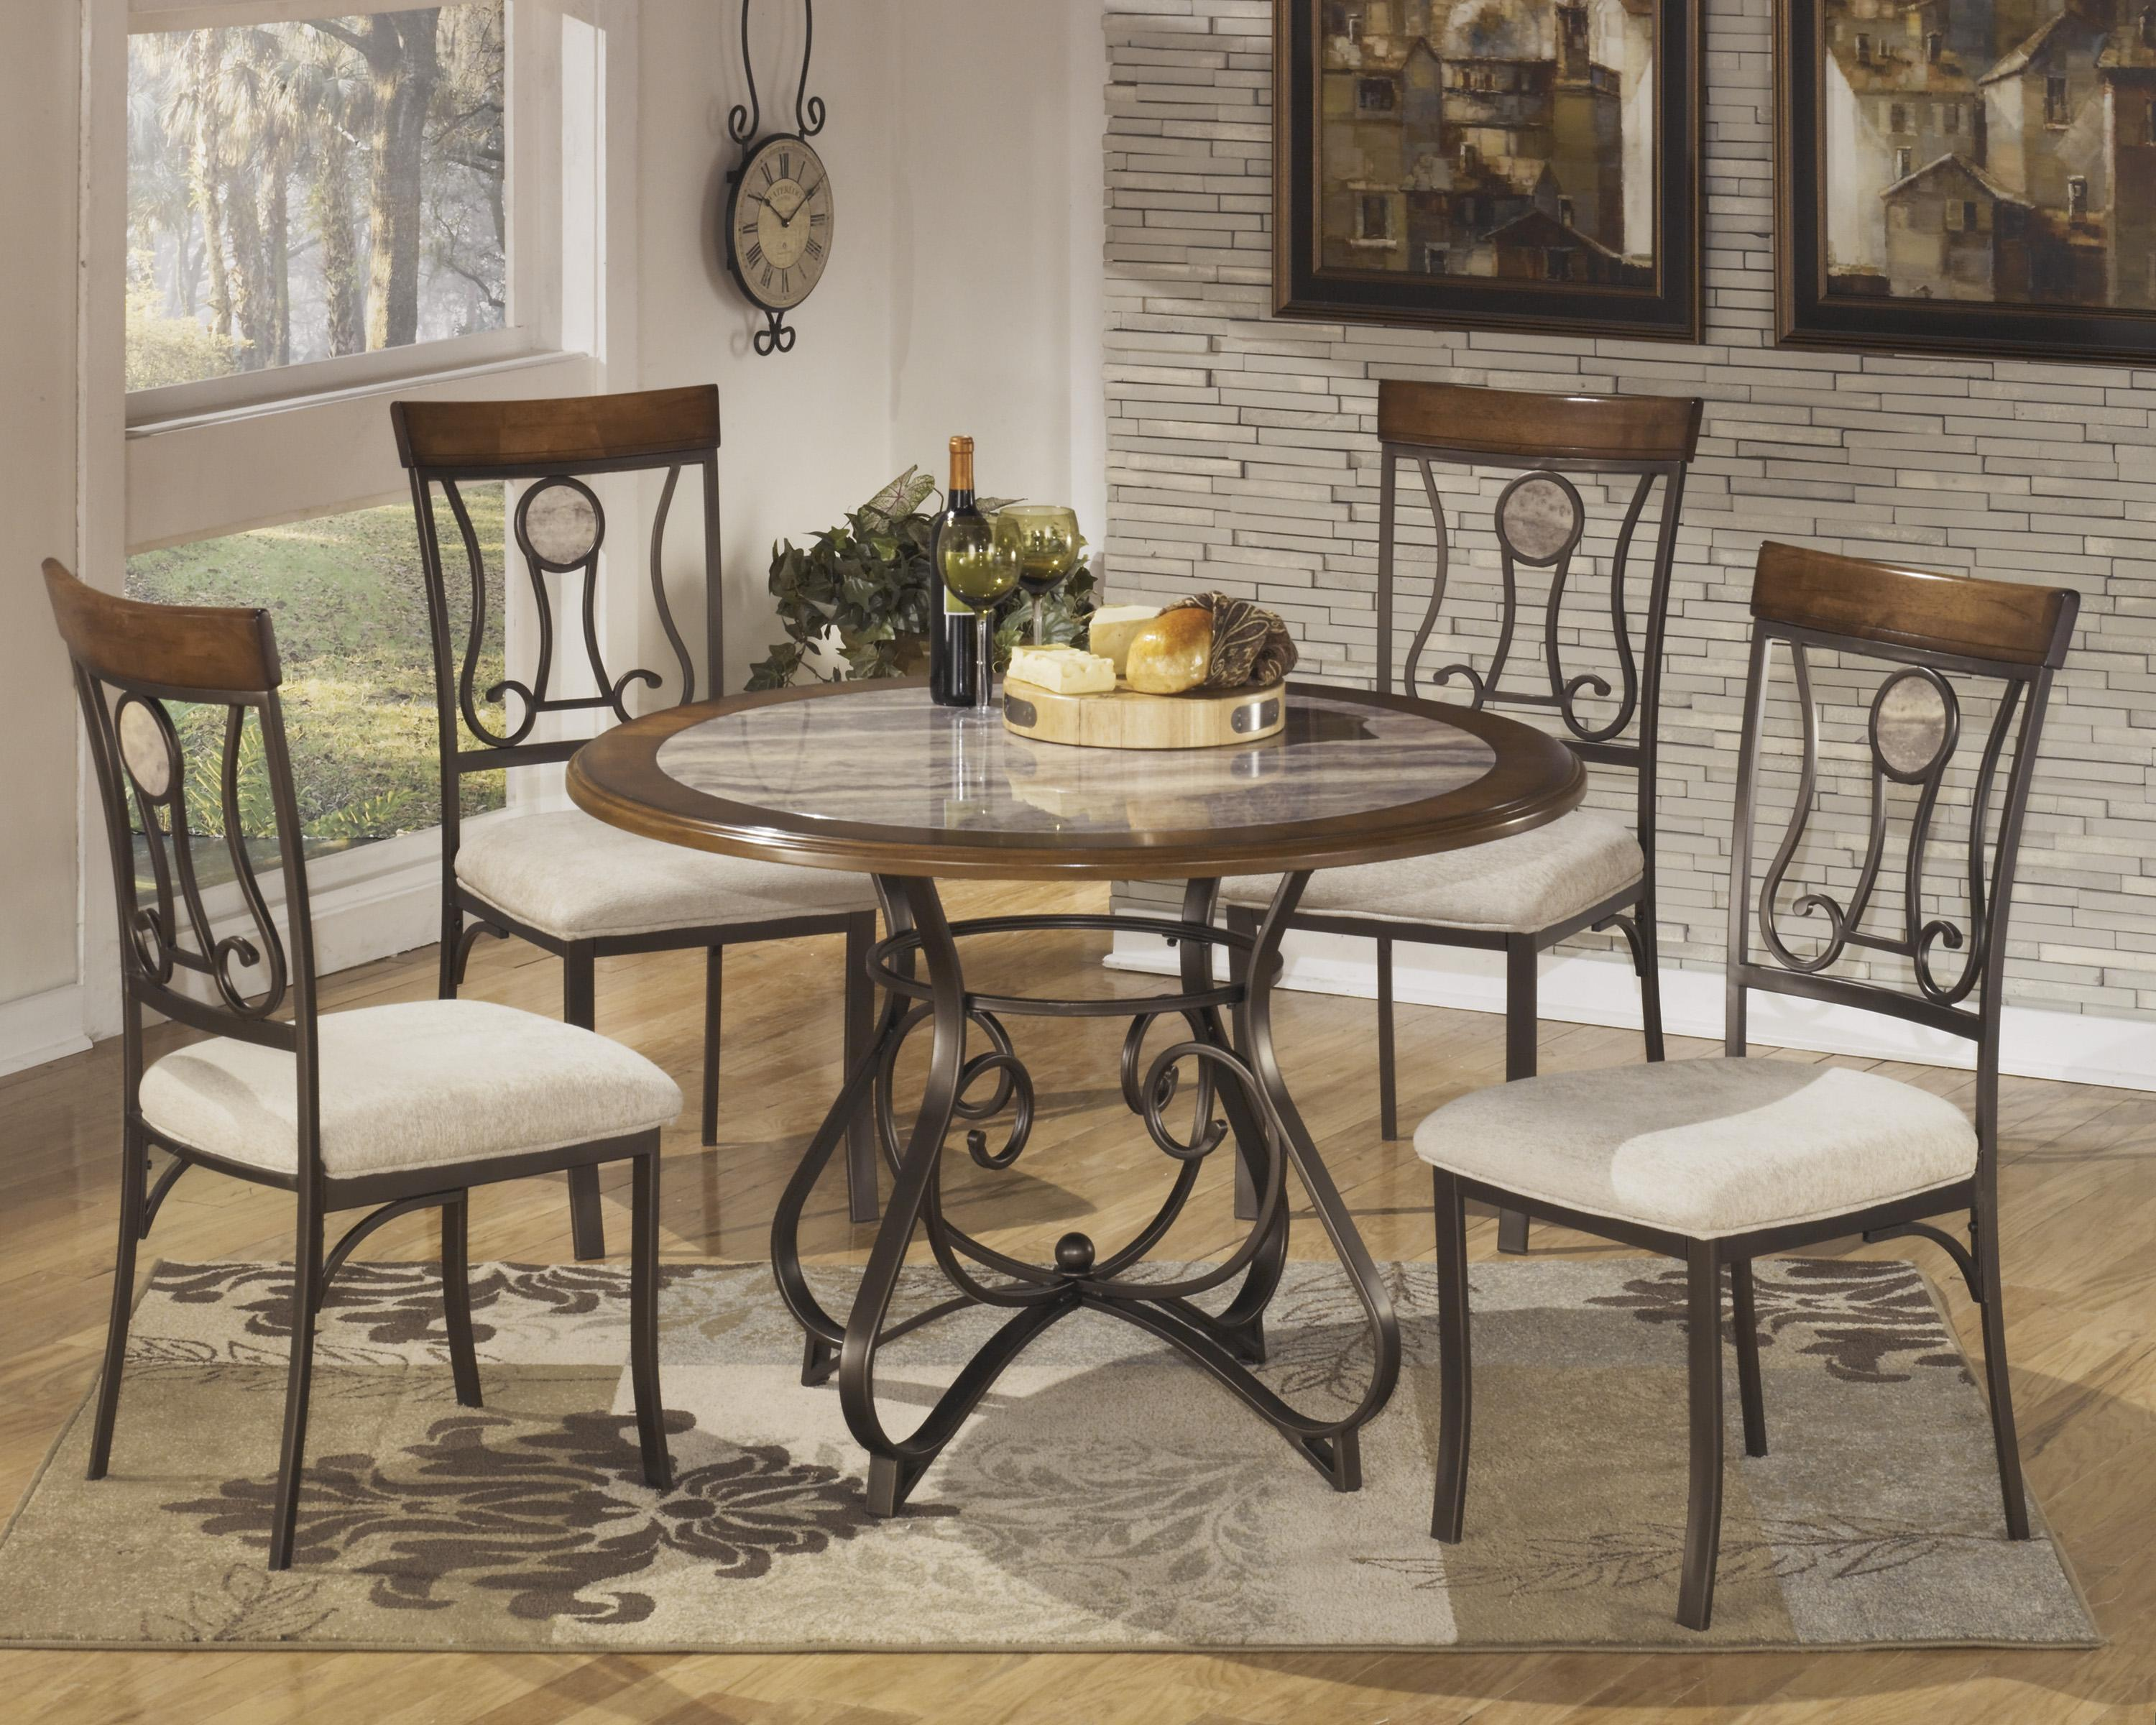 Signature Design by Ashley Hopstand Round Dining Room